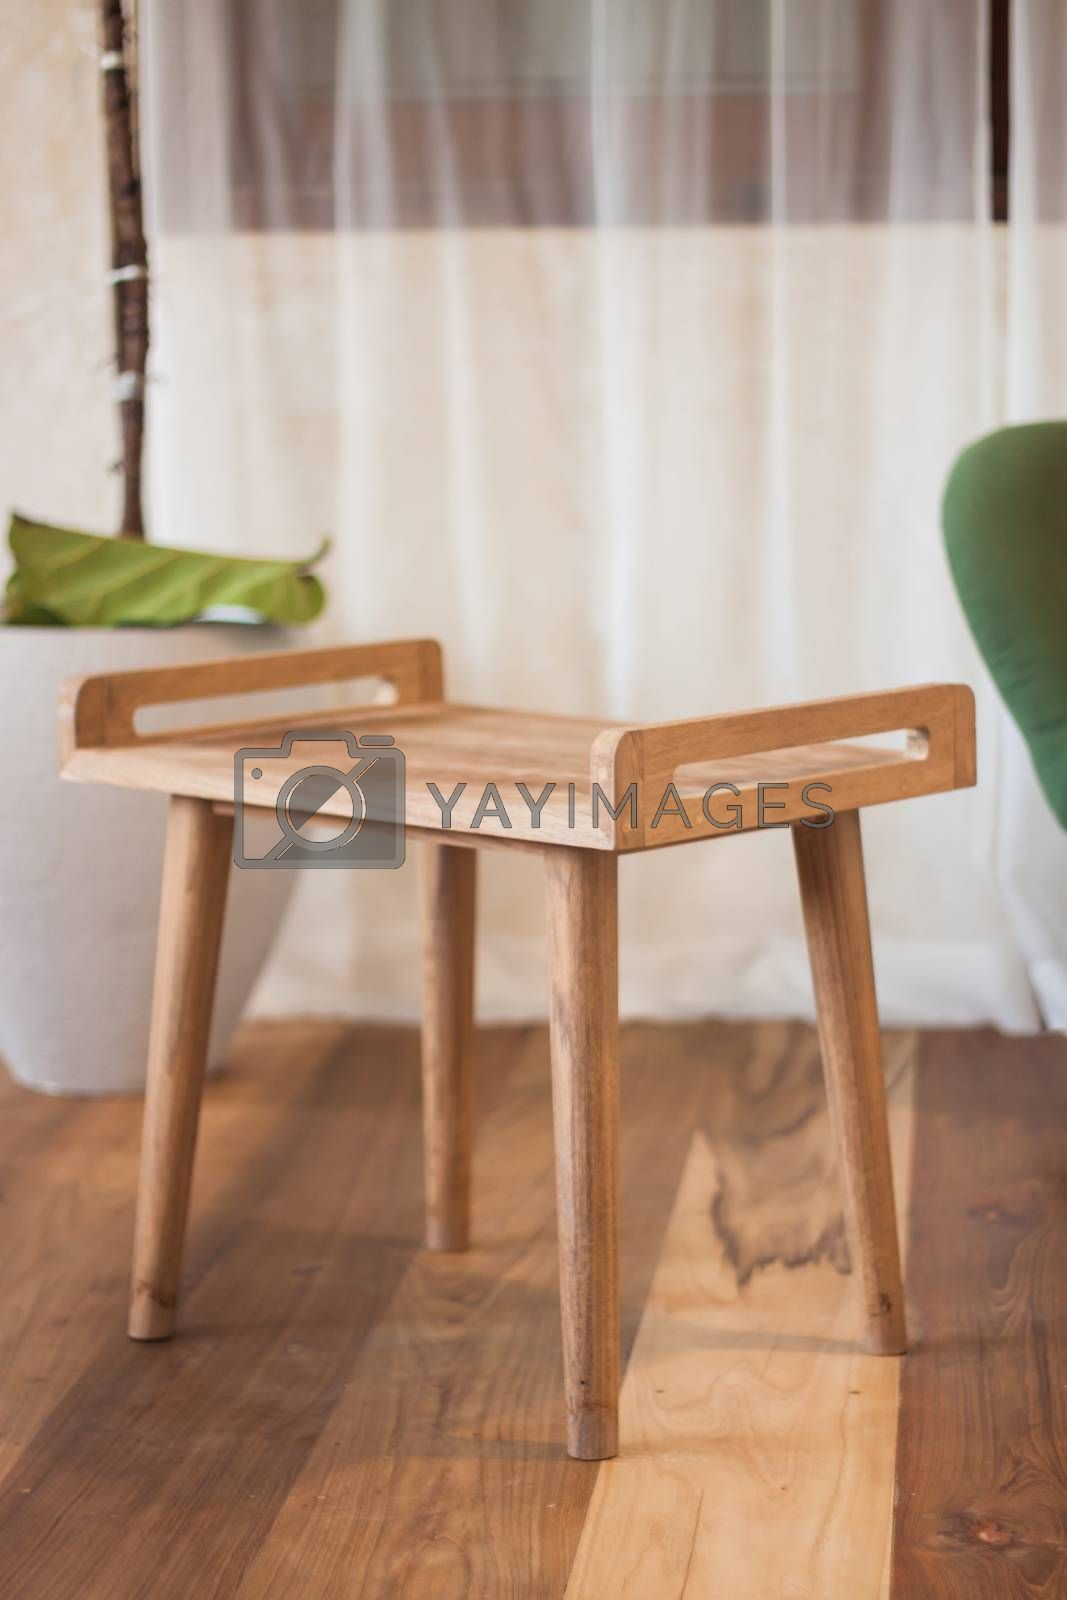 Wooden table decorated in coffee shop with clipping path